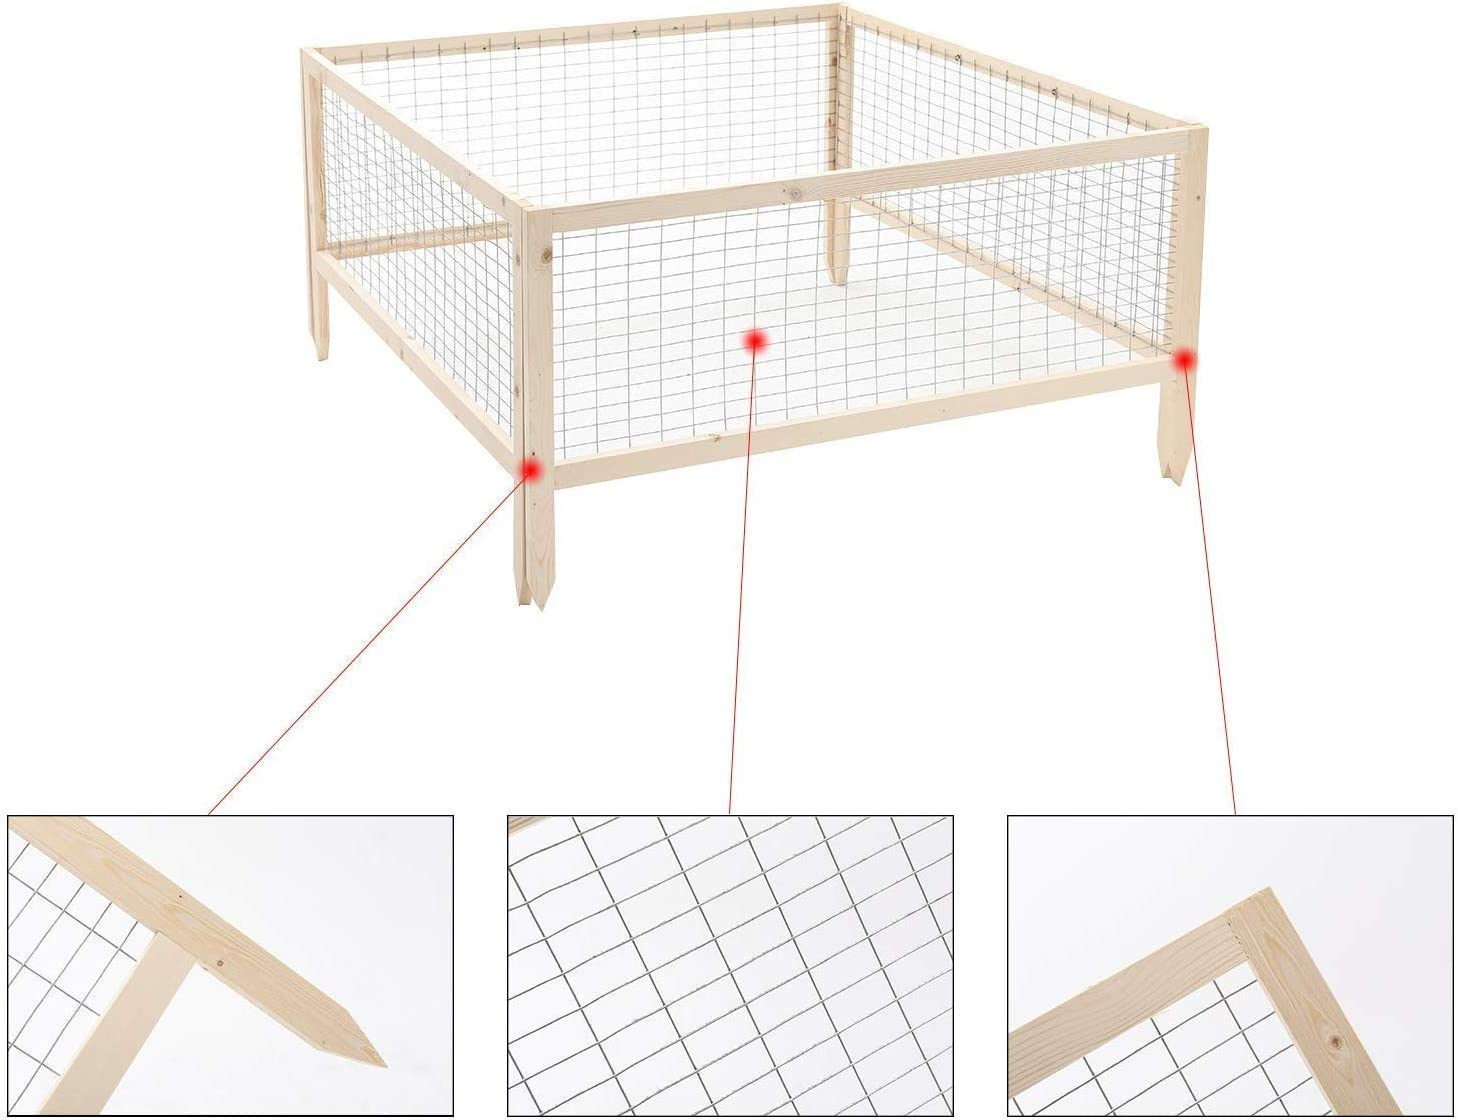 CrownLand Wooden Metal Frame Outdoor Garden Fence Kit for Vegetables Fruits Herb Grow,Patio or Yard Gardening 4 Pack Fast Assembly